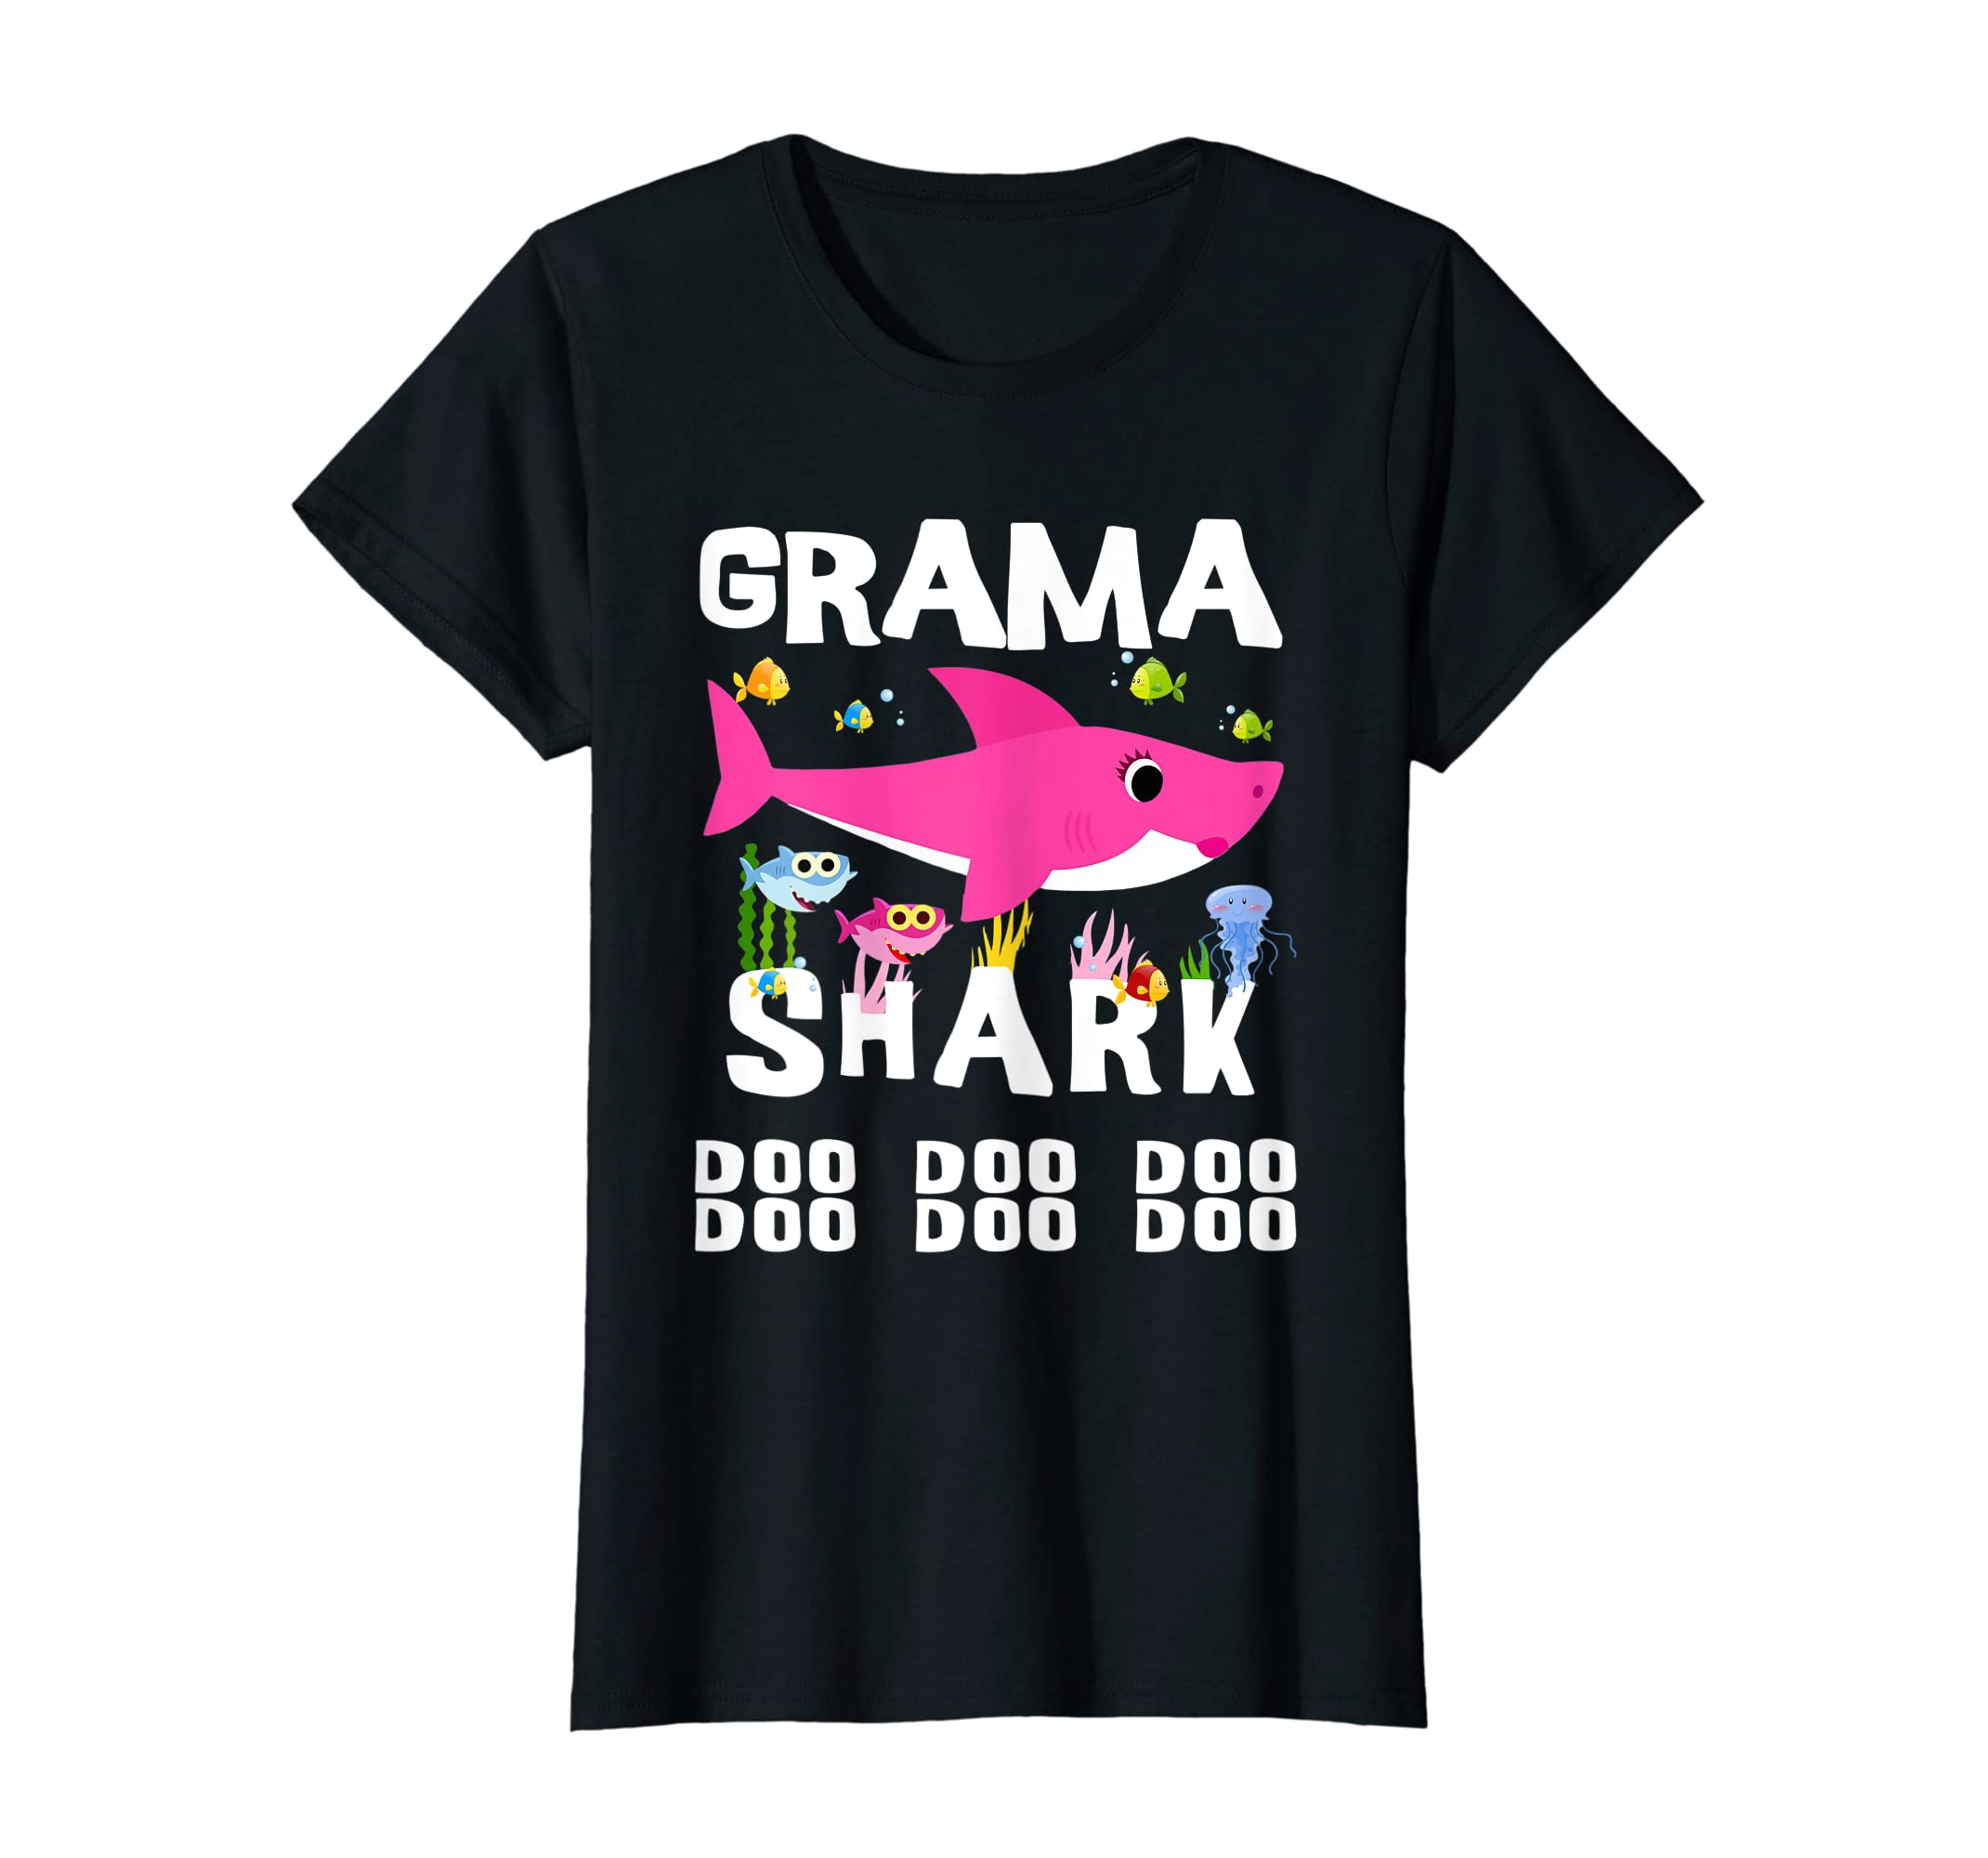 Womens Grama Shark T Shirt, Doo Doo Doo - Mothers Day Gift-Women's T-Shirt-Black